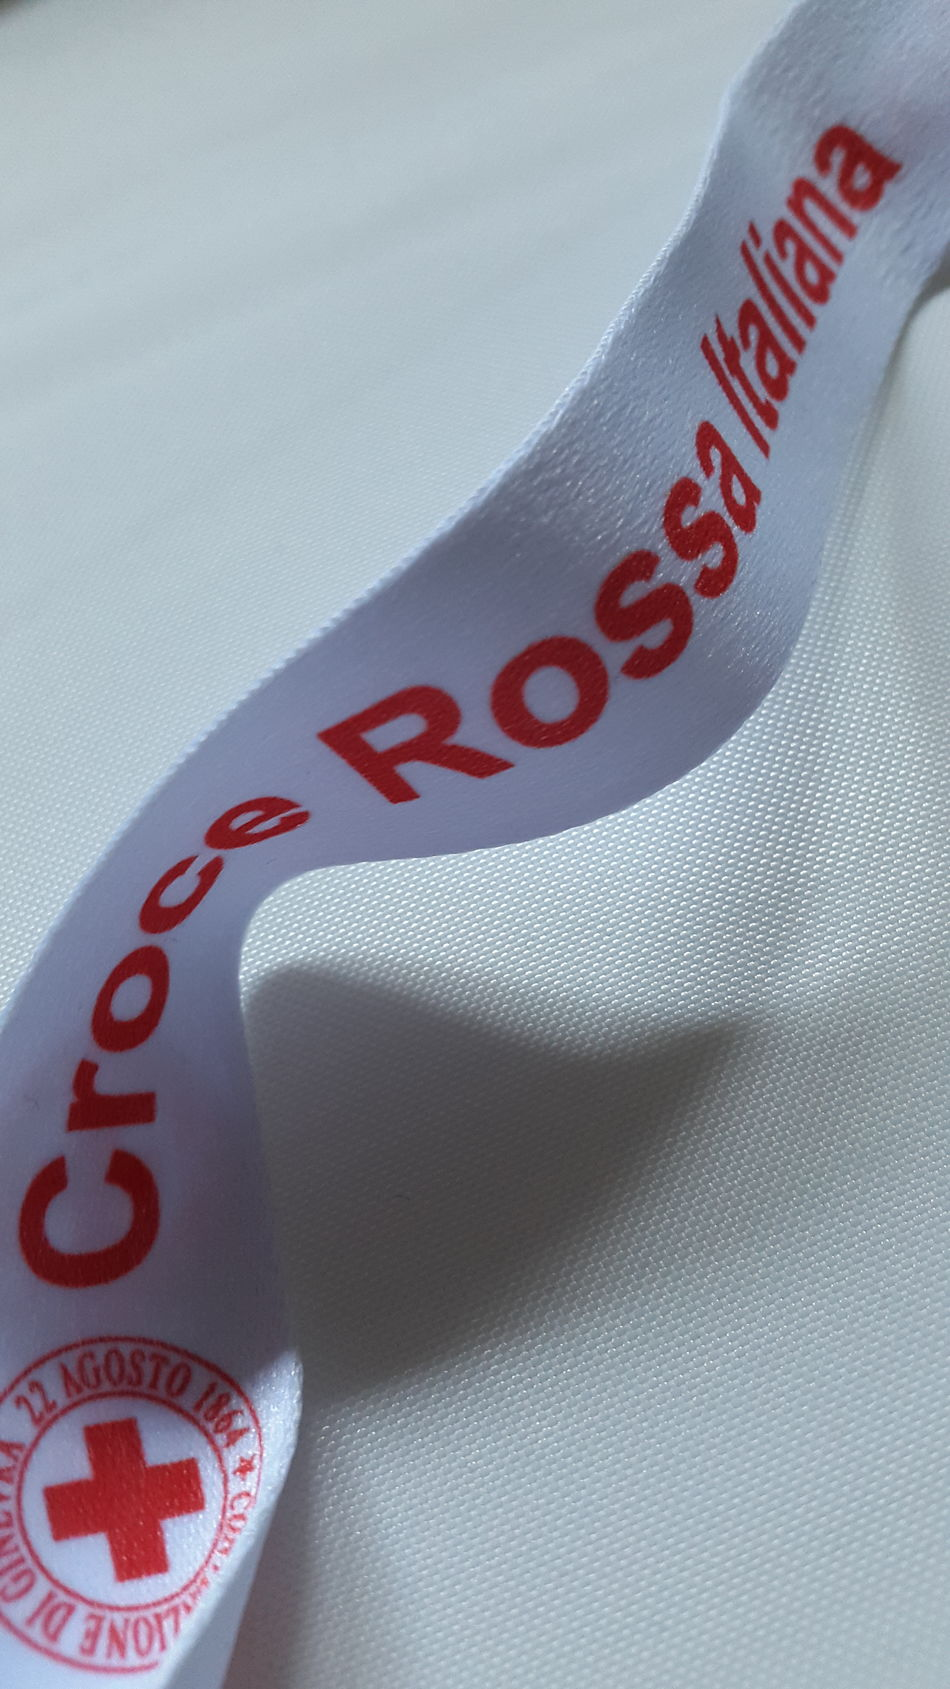 Italian Red Cross assist victims of the earthquake in central Italy along with many other volunteers, rescuers and military to start living again. A thought to these people of my beautiful country and the will and strenght of these angels. Red Cross Italian Red Cross Rescue Rescuers